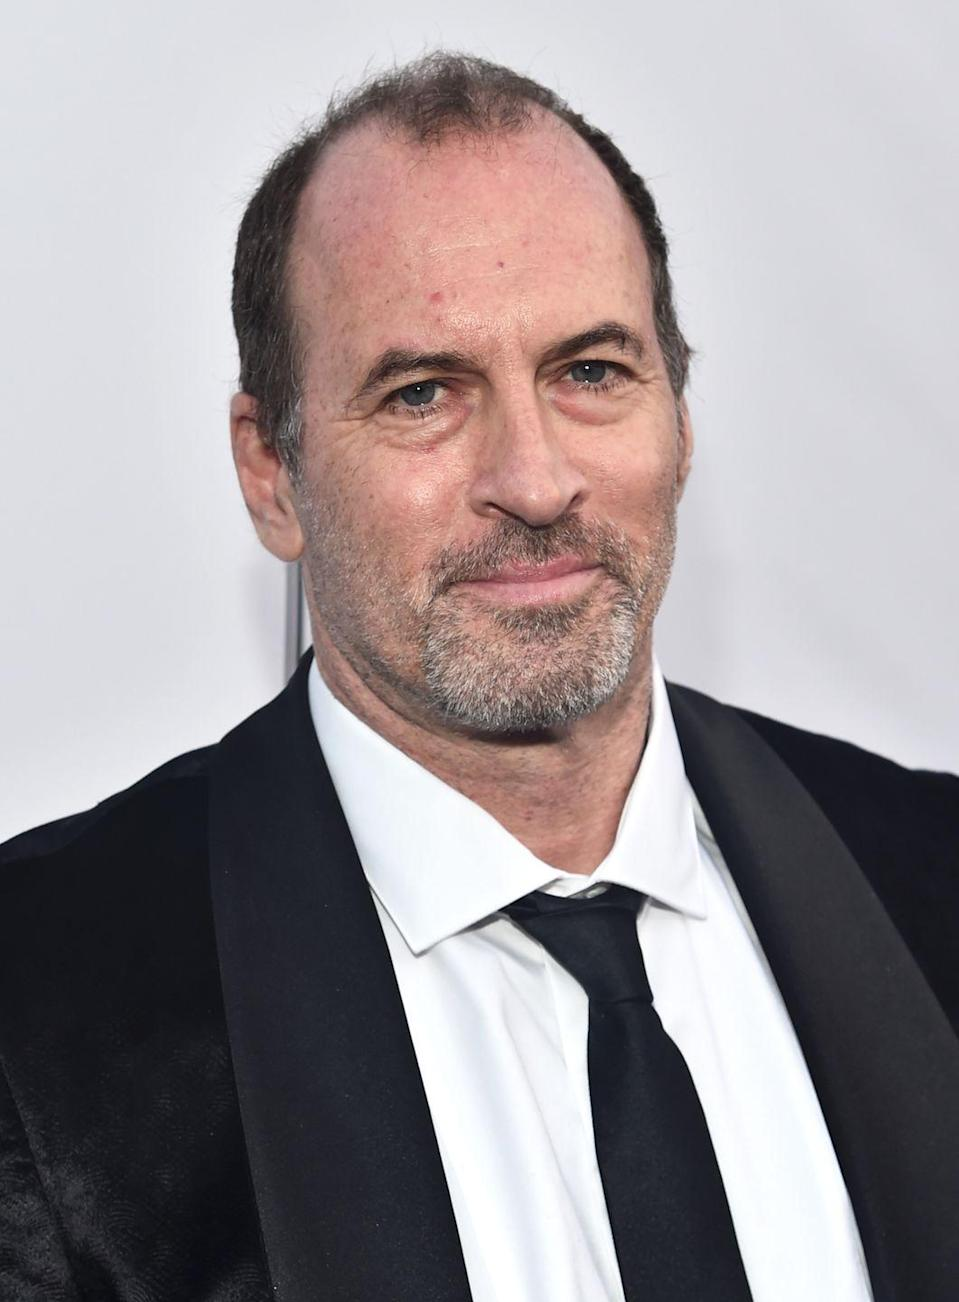 <p>In addition to appearing on the Netflix revival a few years ago, Scott starred in the horror films <em>Saw </em><em>IV </em>and <em>Saw V. </em>The actor is also a musician on the side. </p>